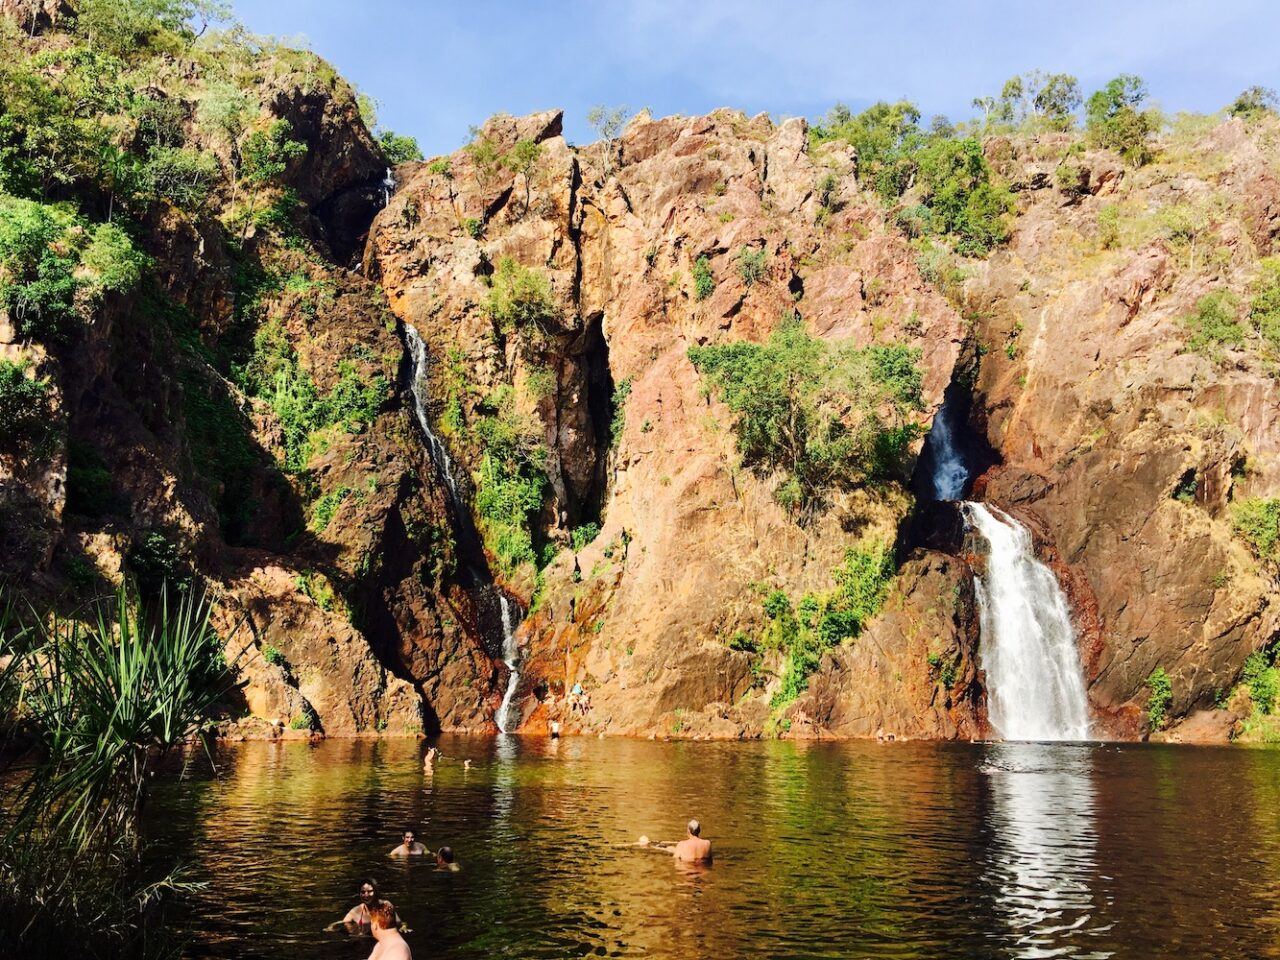 My swimming hole vs yours – if you find a better place for a dip, post it and I_ll retire this one